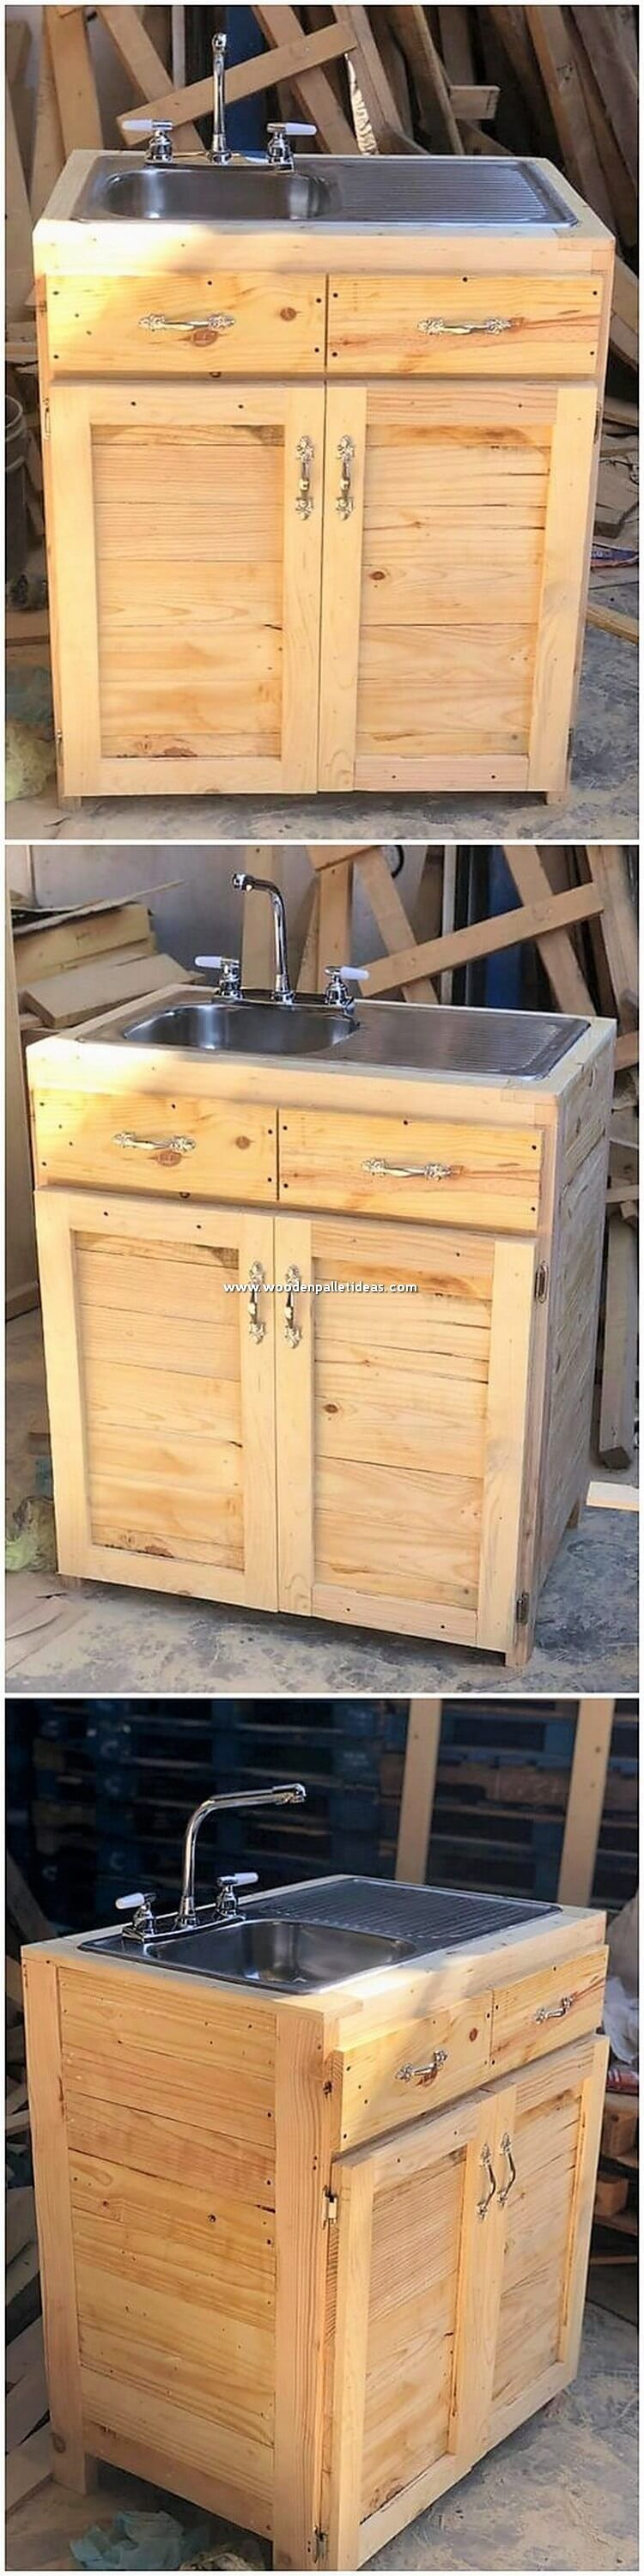 Extraordinary Cheap Reycled Pallet Projects for Your Home #oldpalletsforcrafting